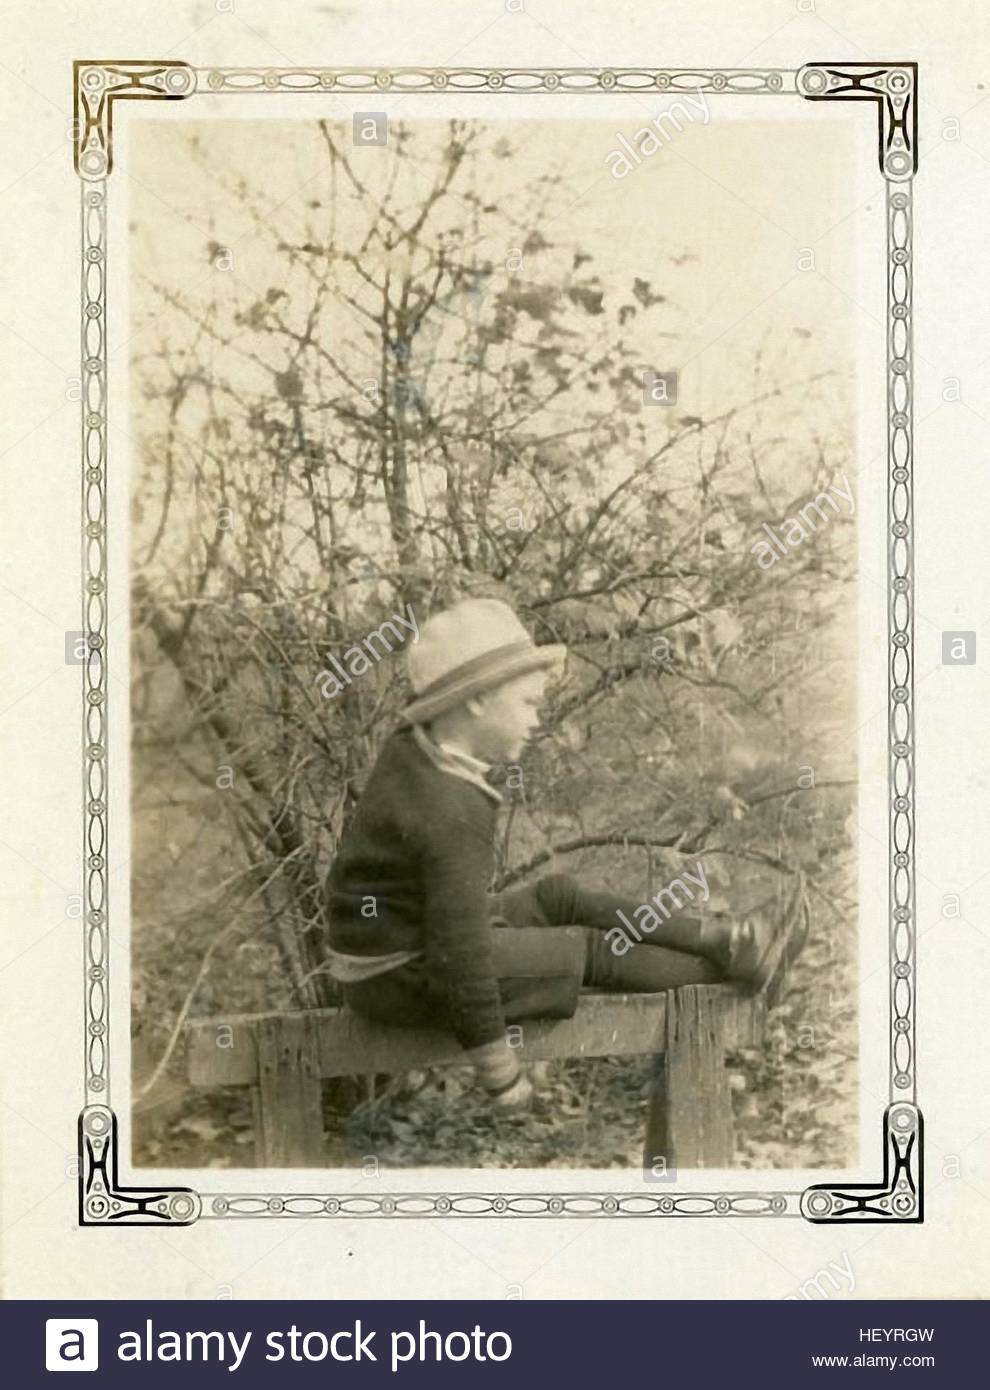 adorable young boy sitting on the edge of the char on the vintage photography from the 30s - Stock Image